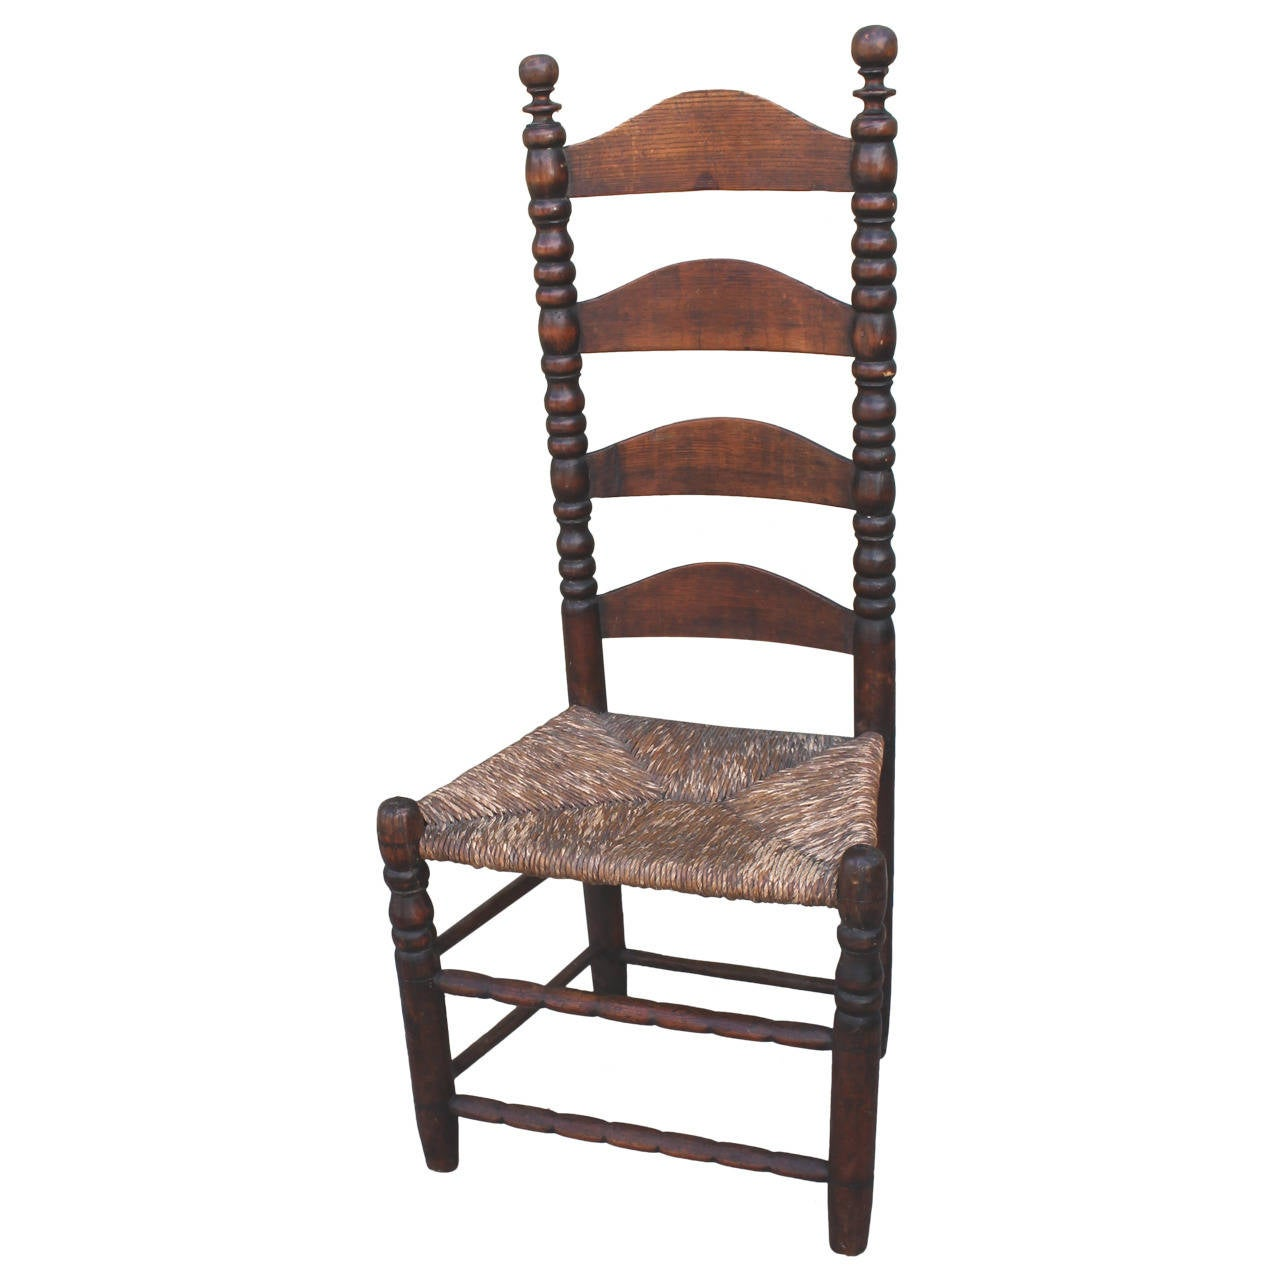 Early 18th century new england ladder back side chair for Ladder back chairs